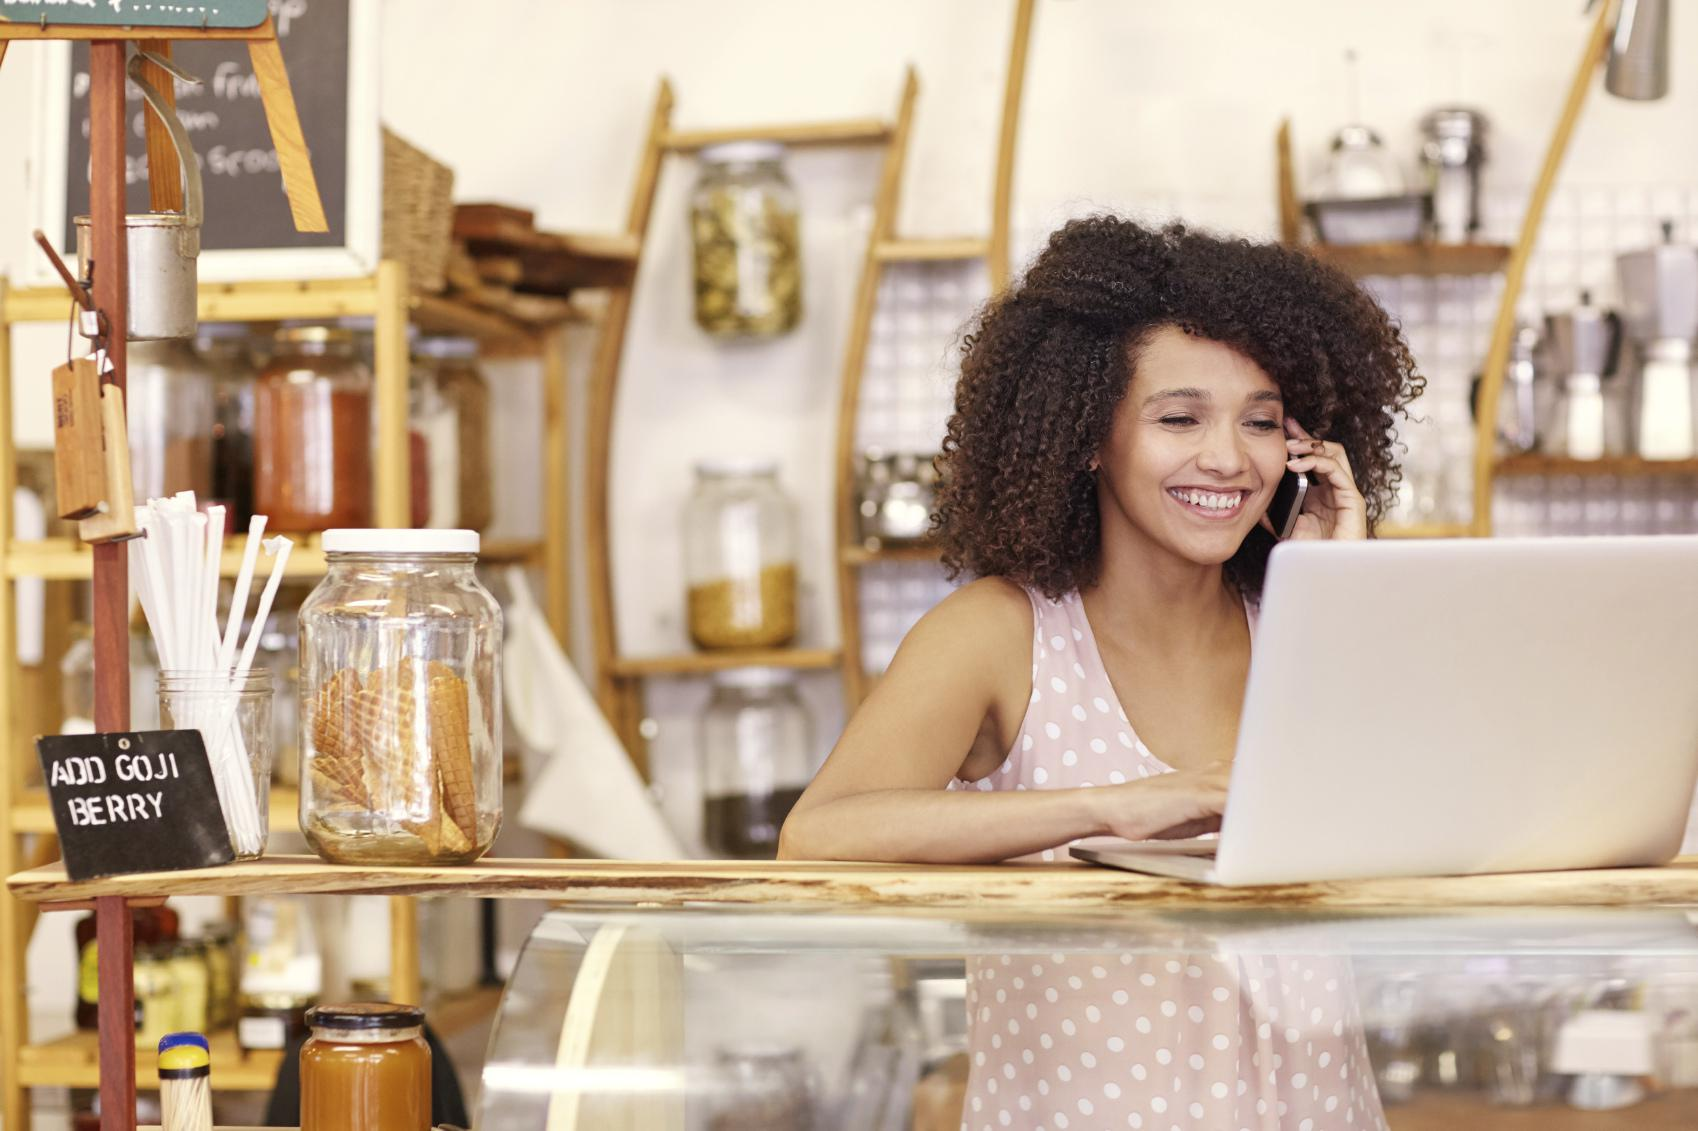 Don't Think Your Small Business Needs Insurance? Think Again! on avanteinsurance.com